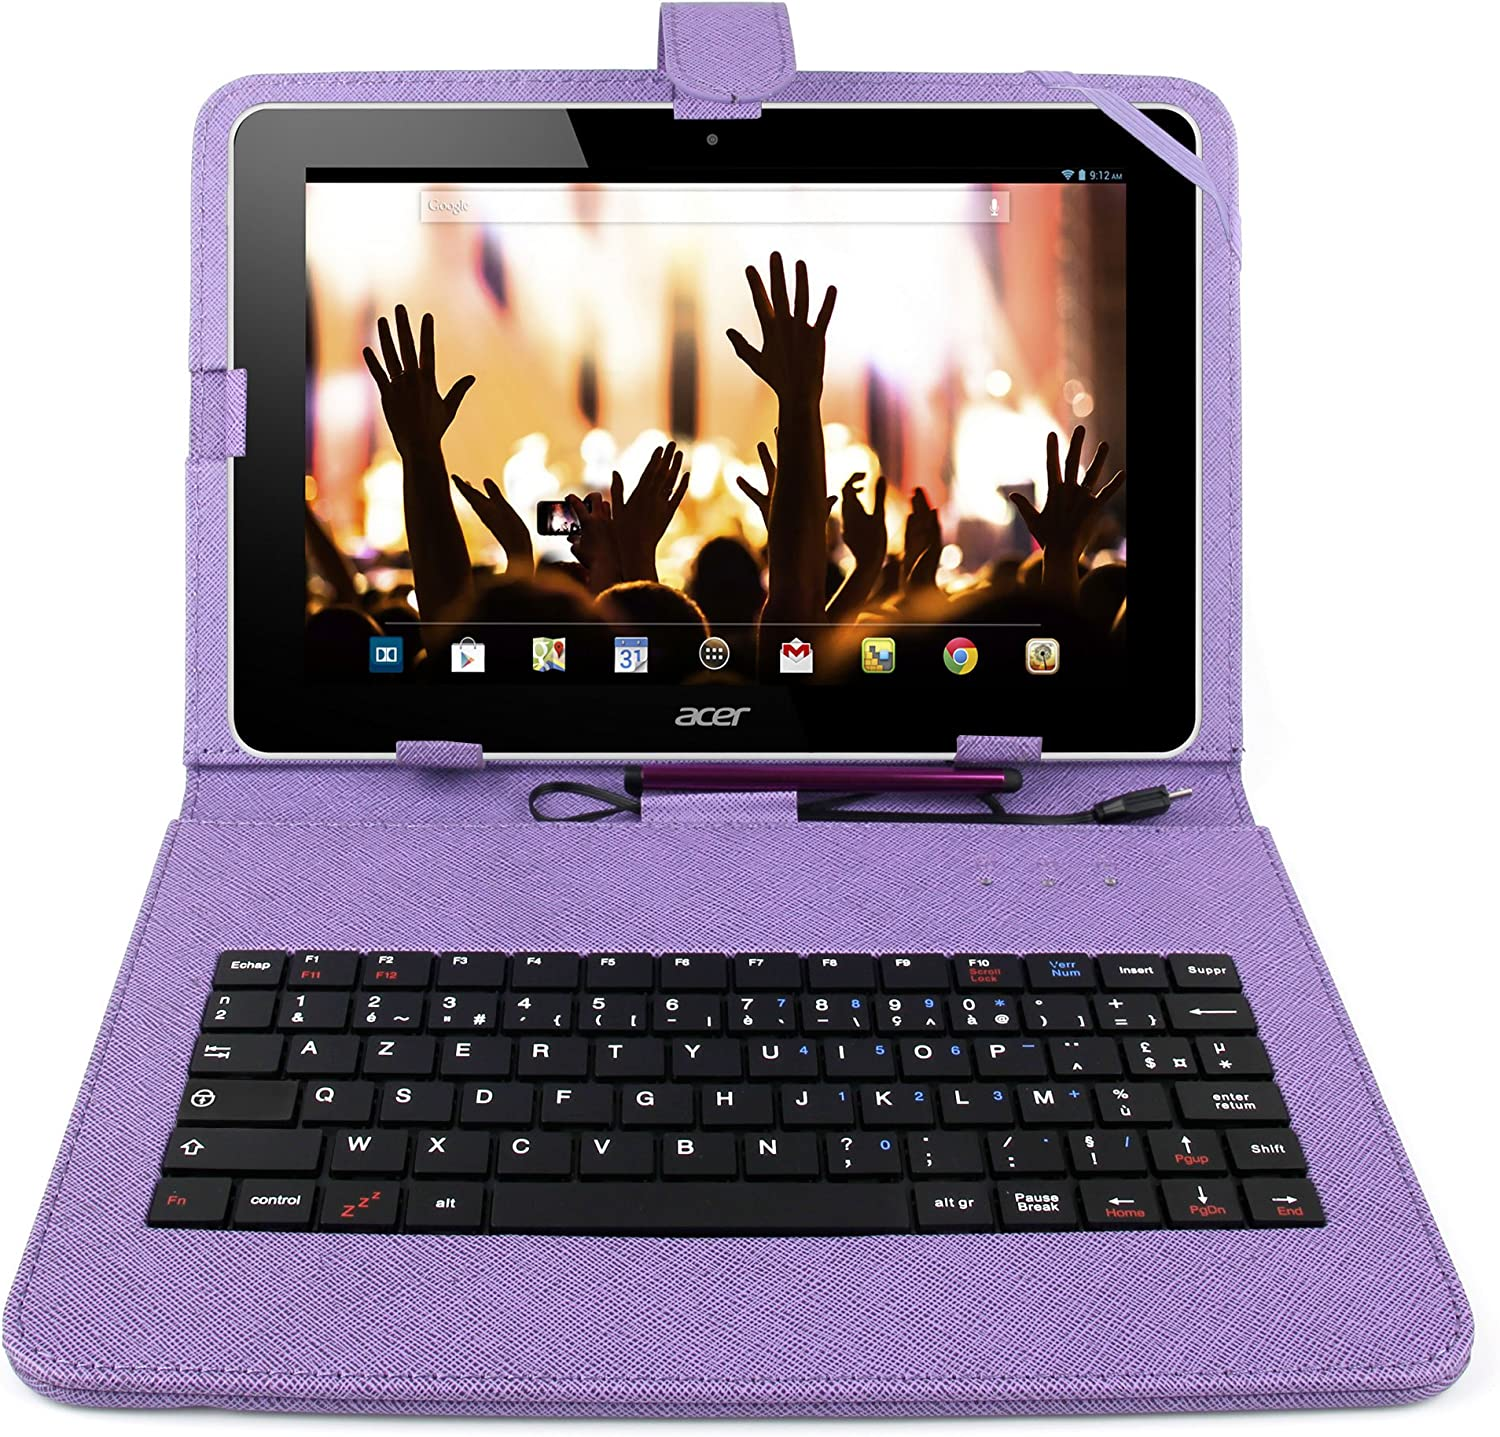 DURAGADGET Purple French Keyboard Case w/Stand Case - Compatible with Acer Iconia Tab A3 | Aspire Iconia Tab A500 & Ionia A200 Tablets